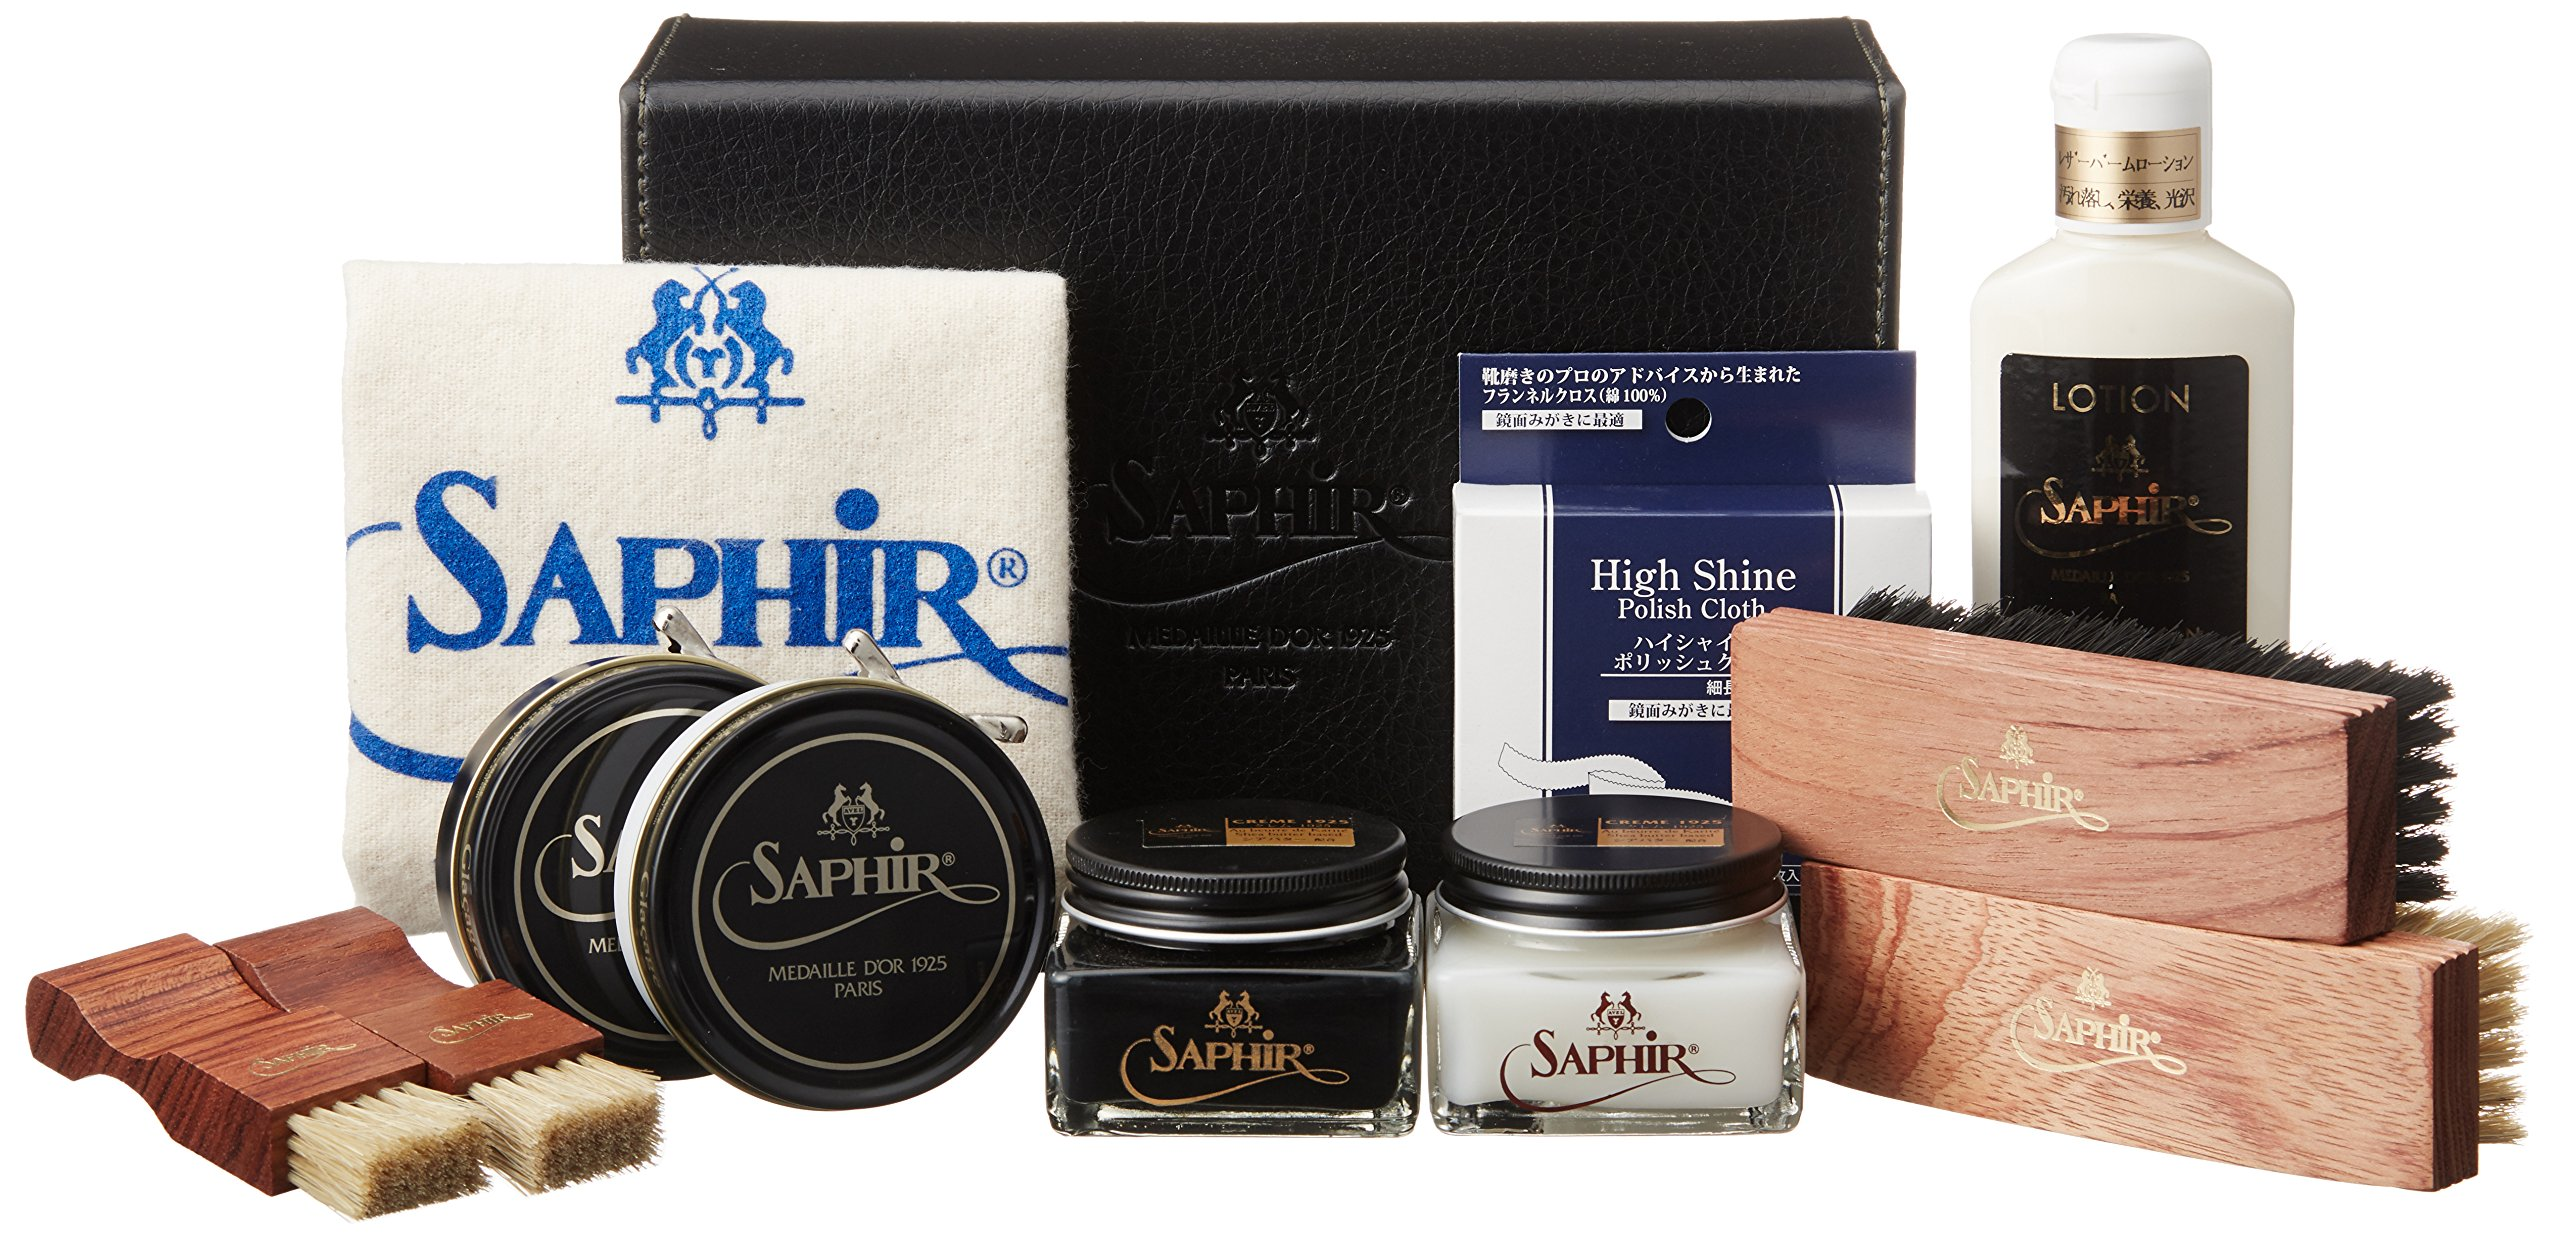 [Saphir Noir] Deluxe High Shine set Large 4900123000 neutral black, without neutral size